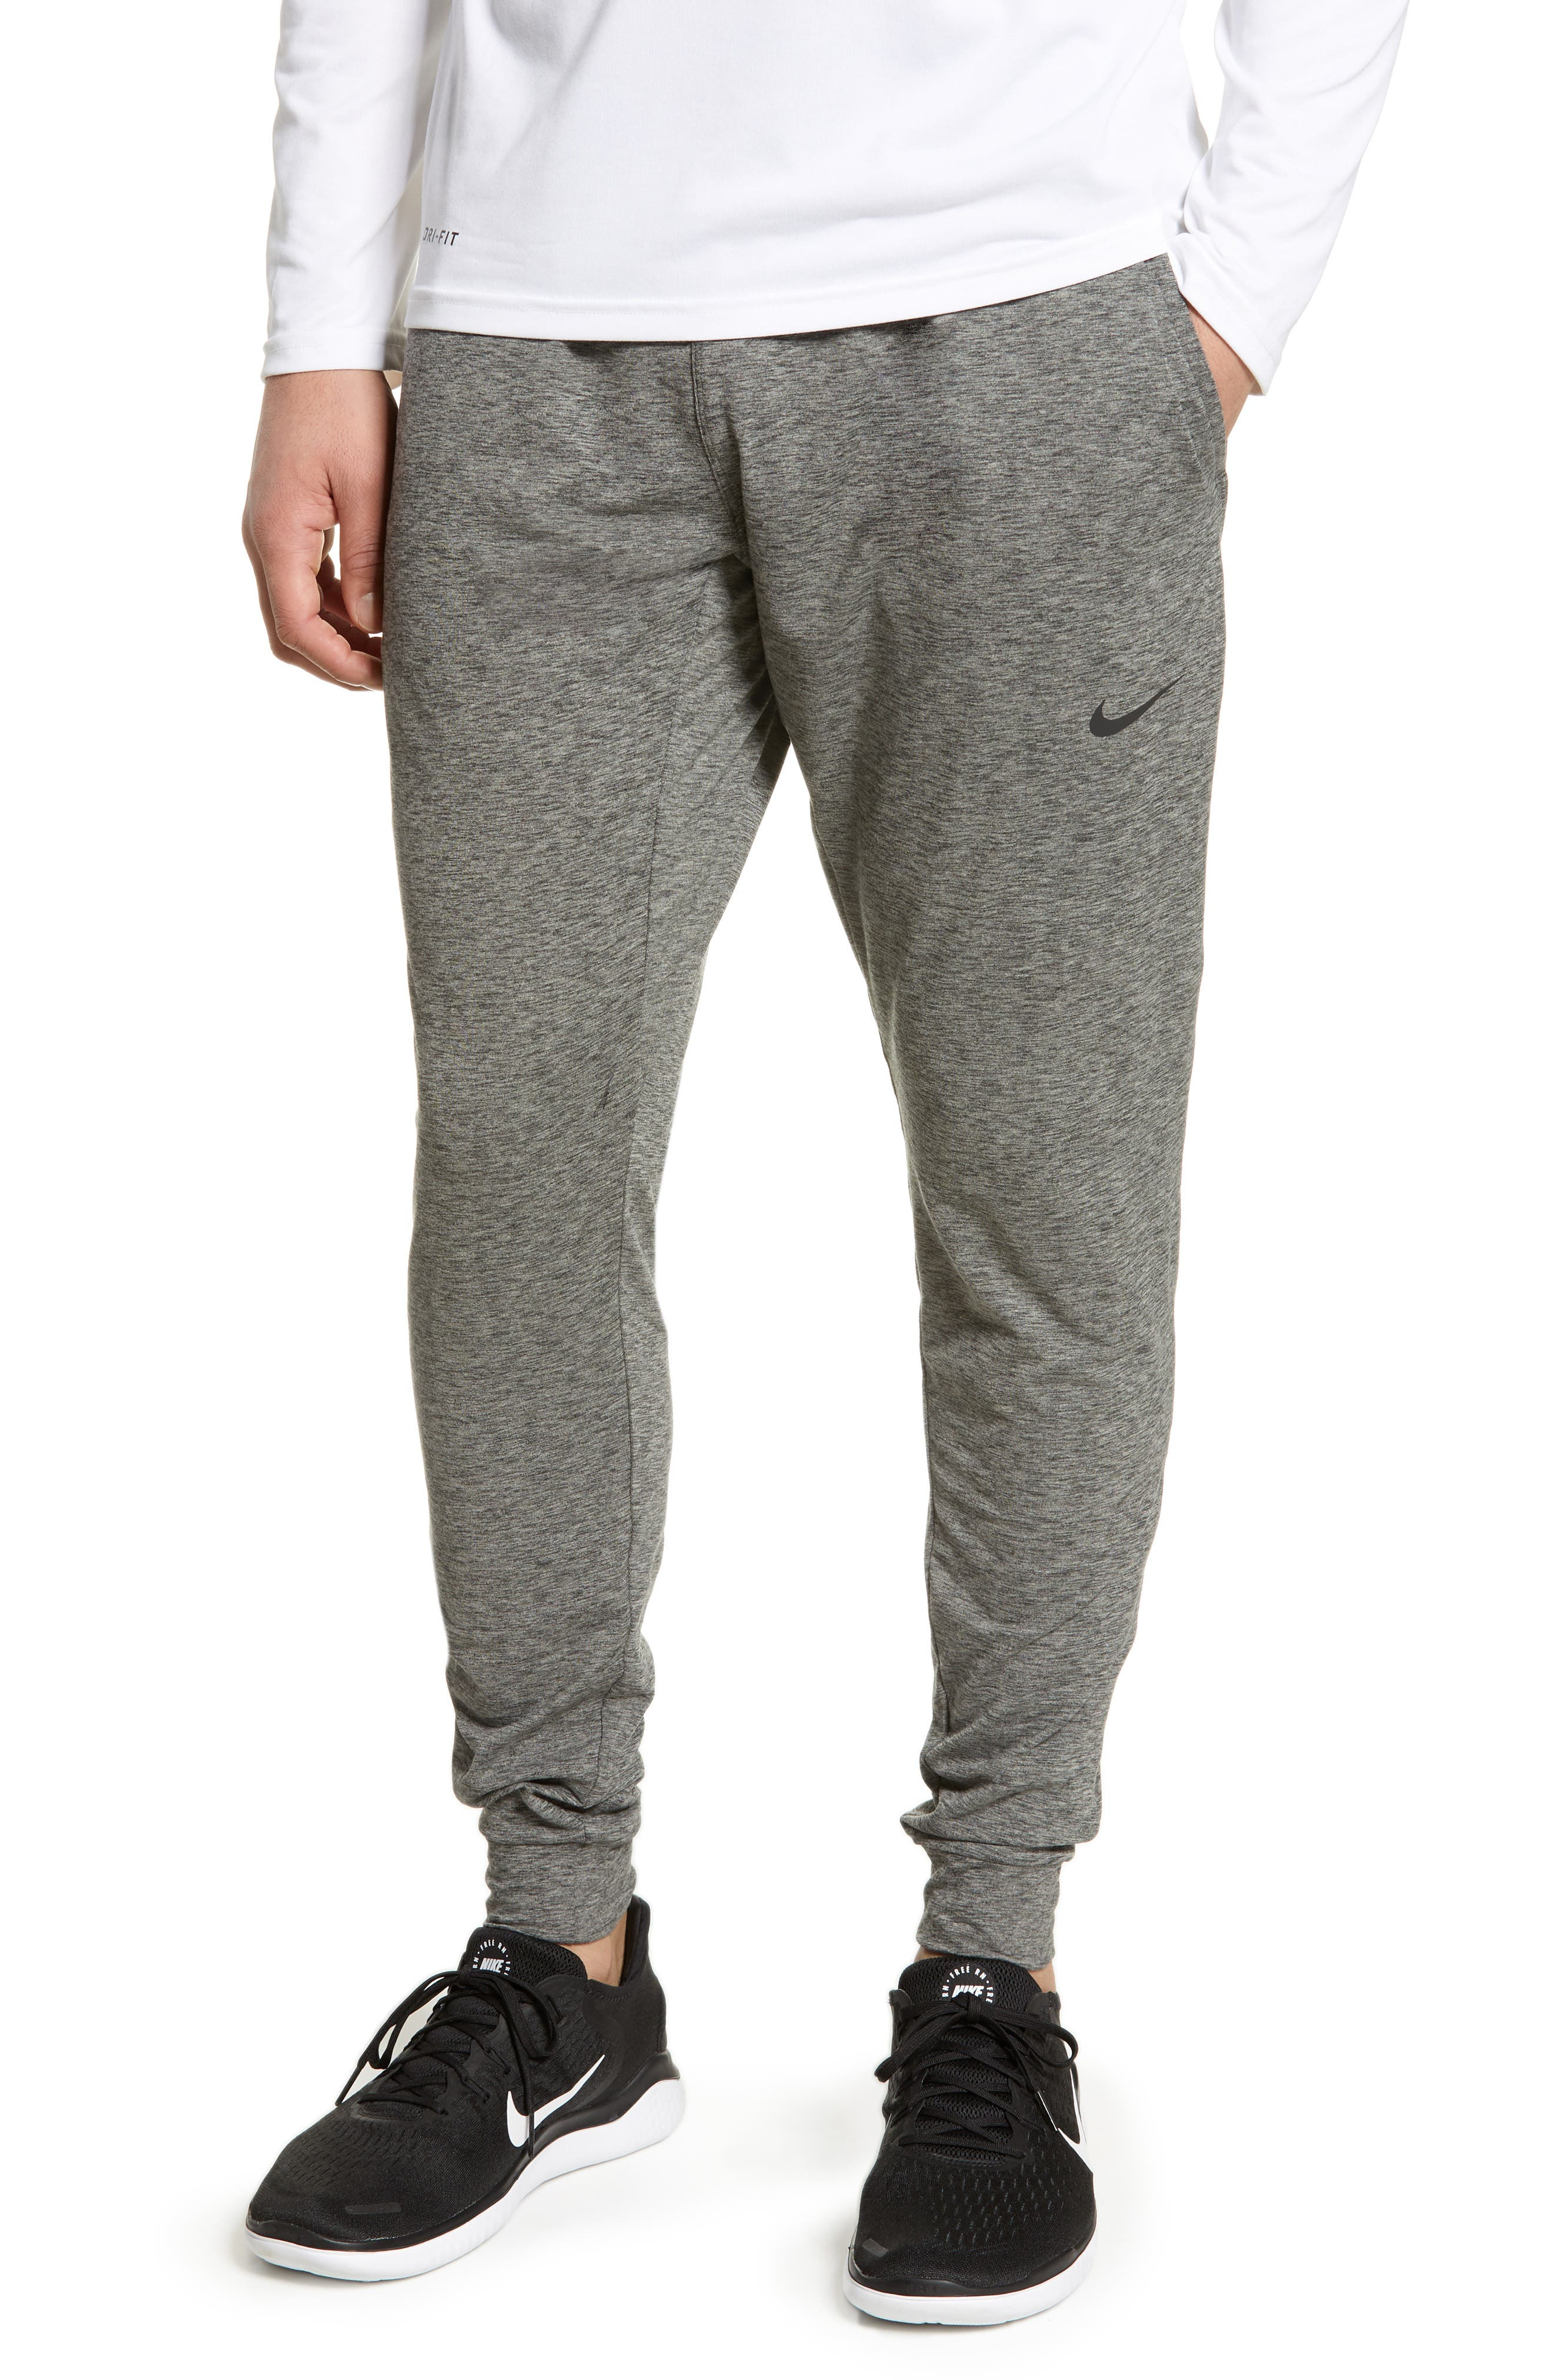 Men's Nike Transcend Dry Yoga Training Pants